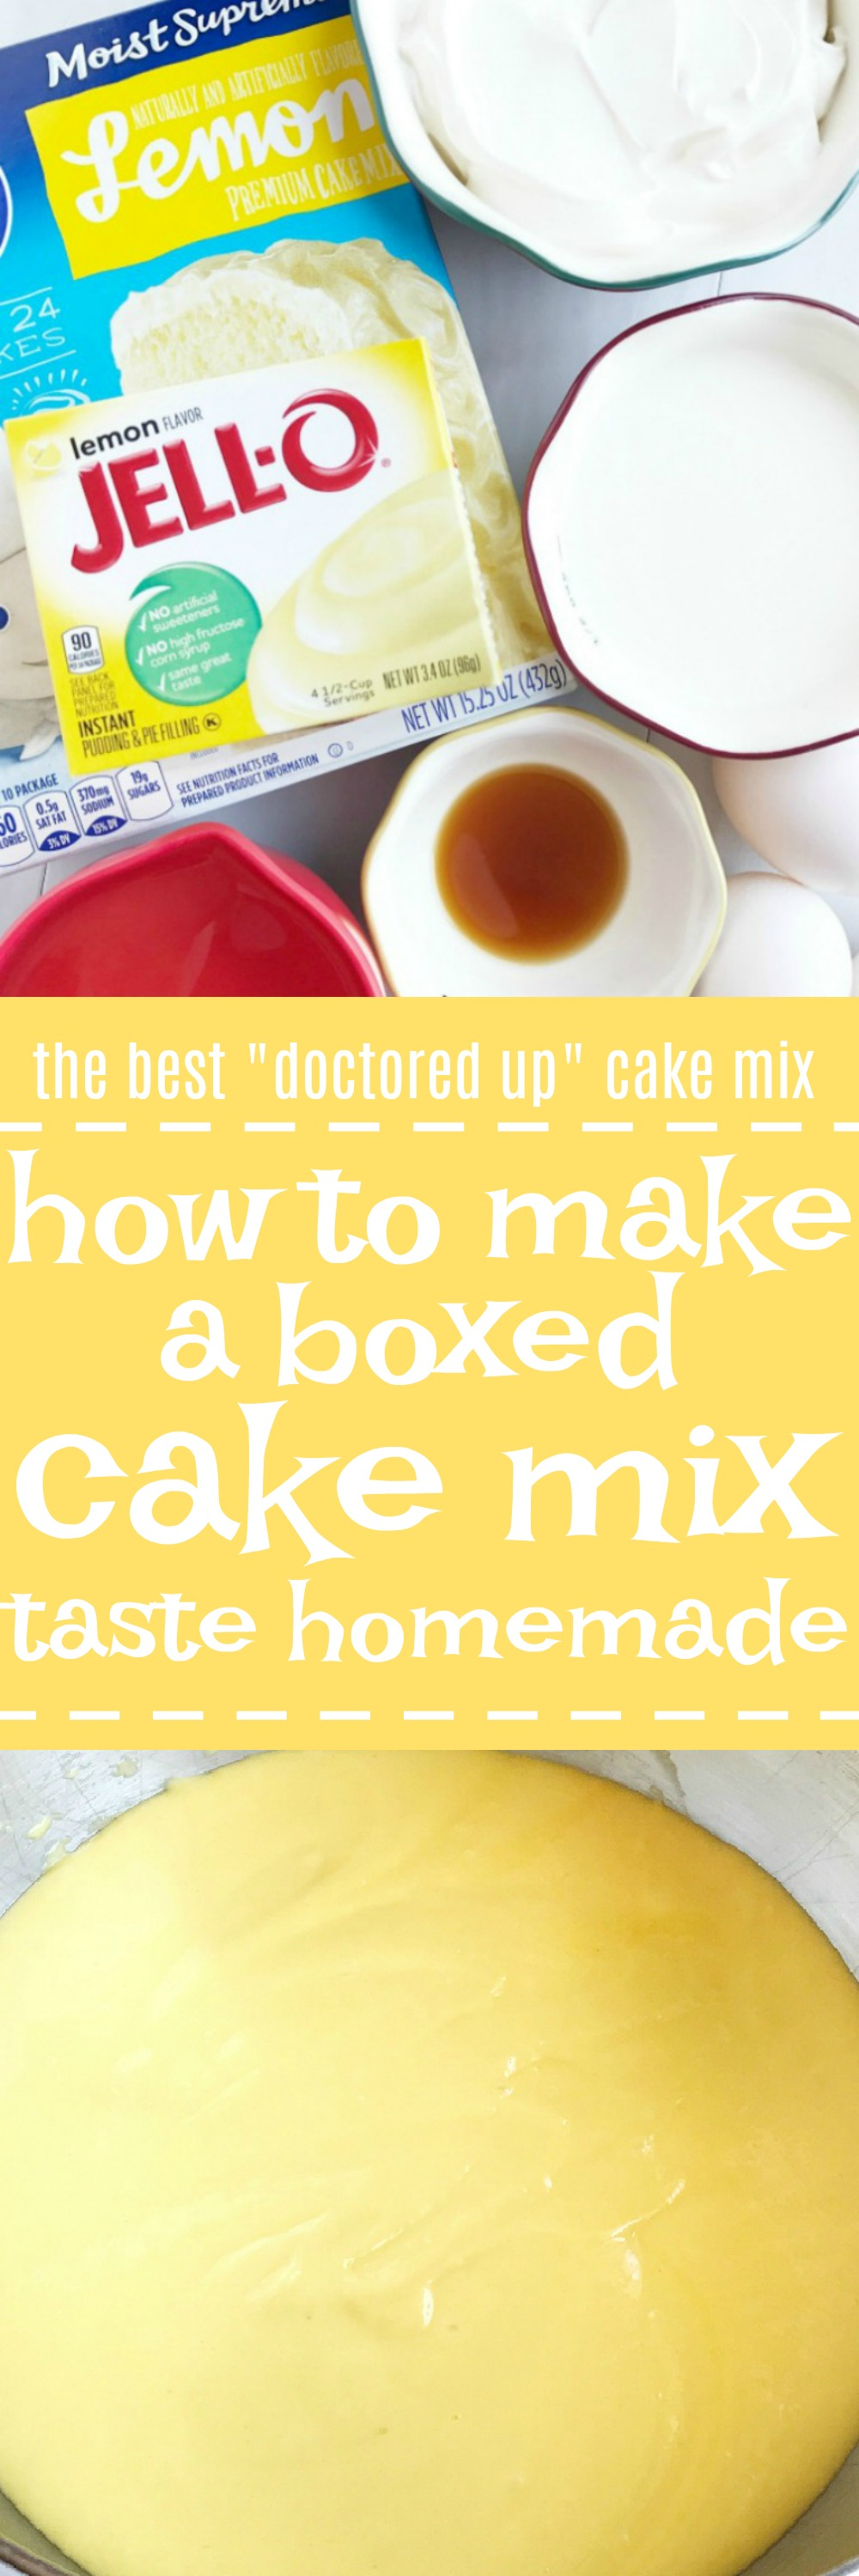 Doctored Up Cake Mix With Pudding